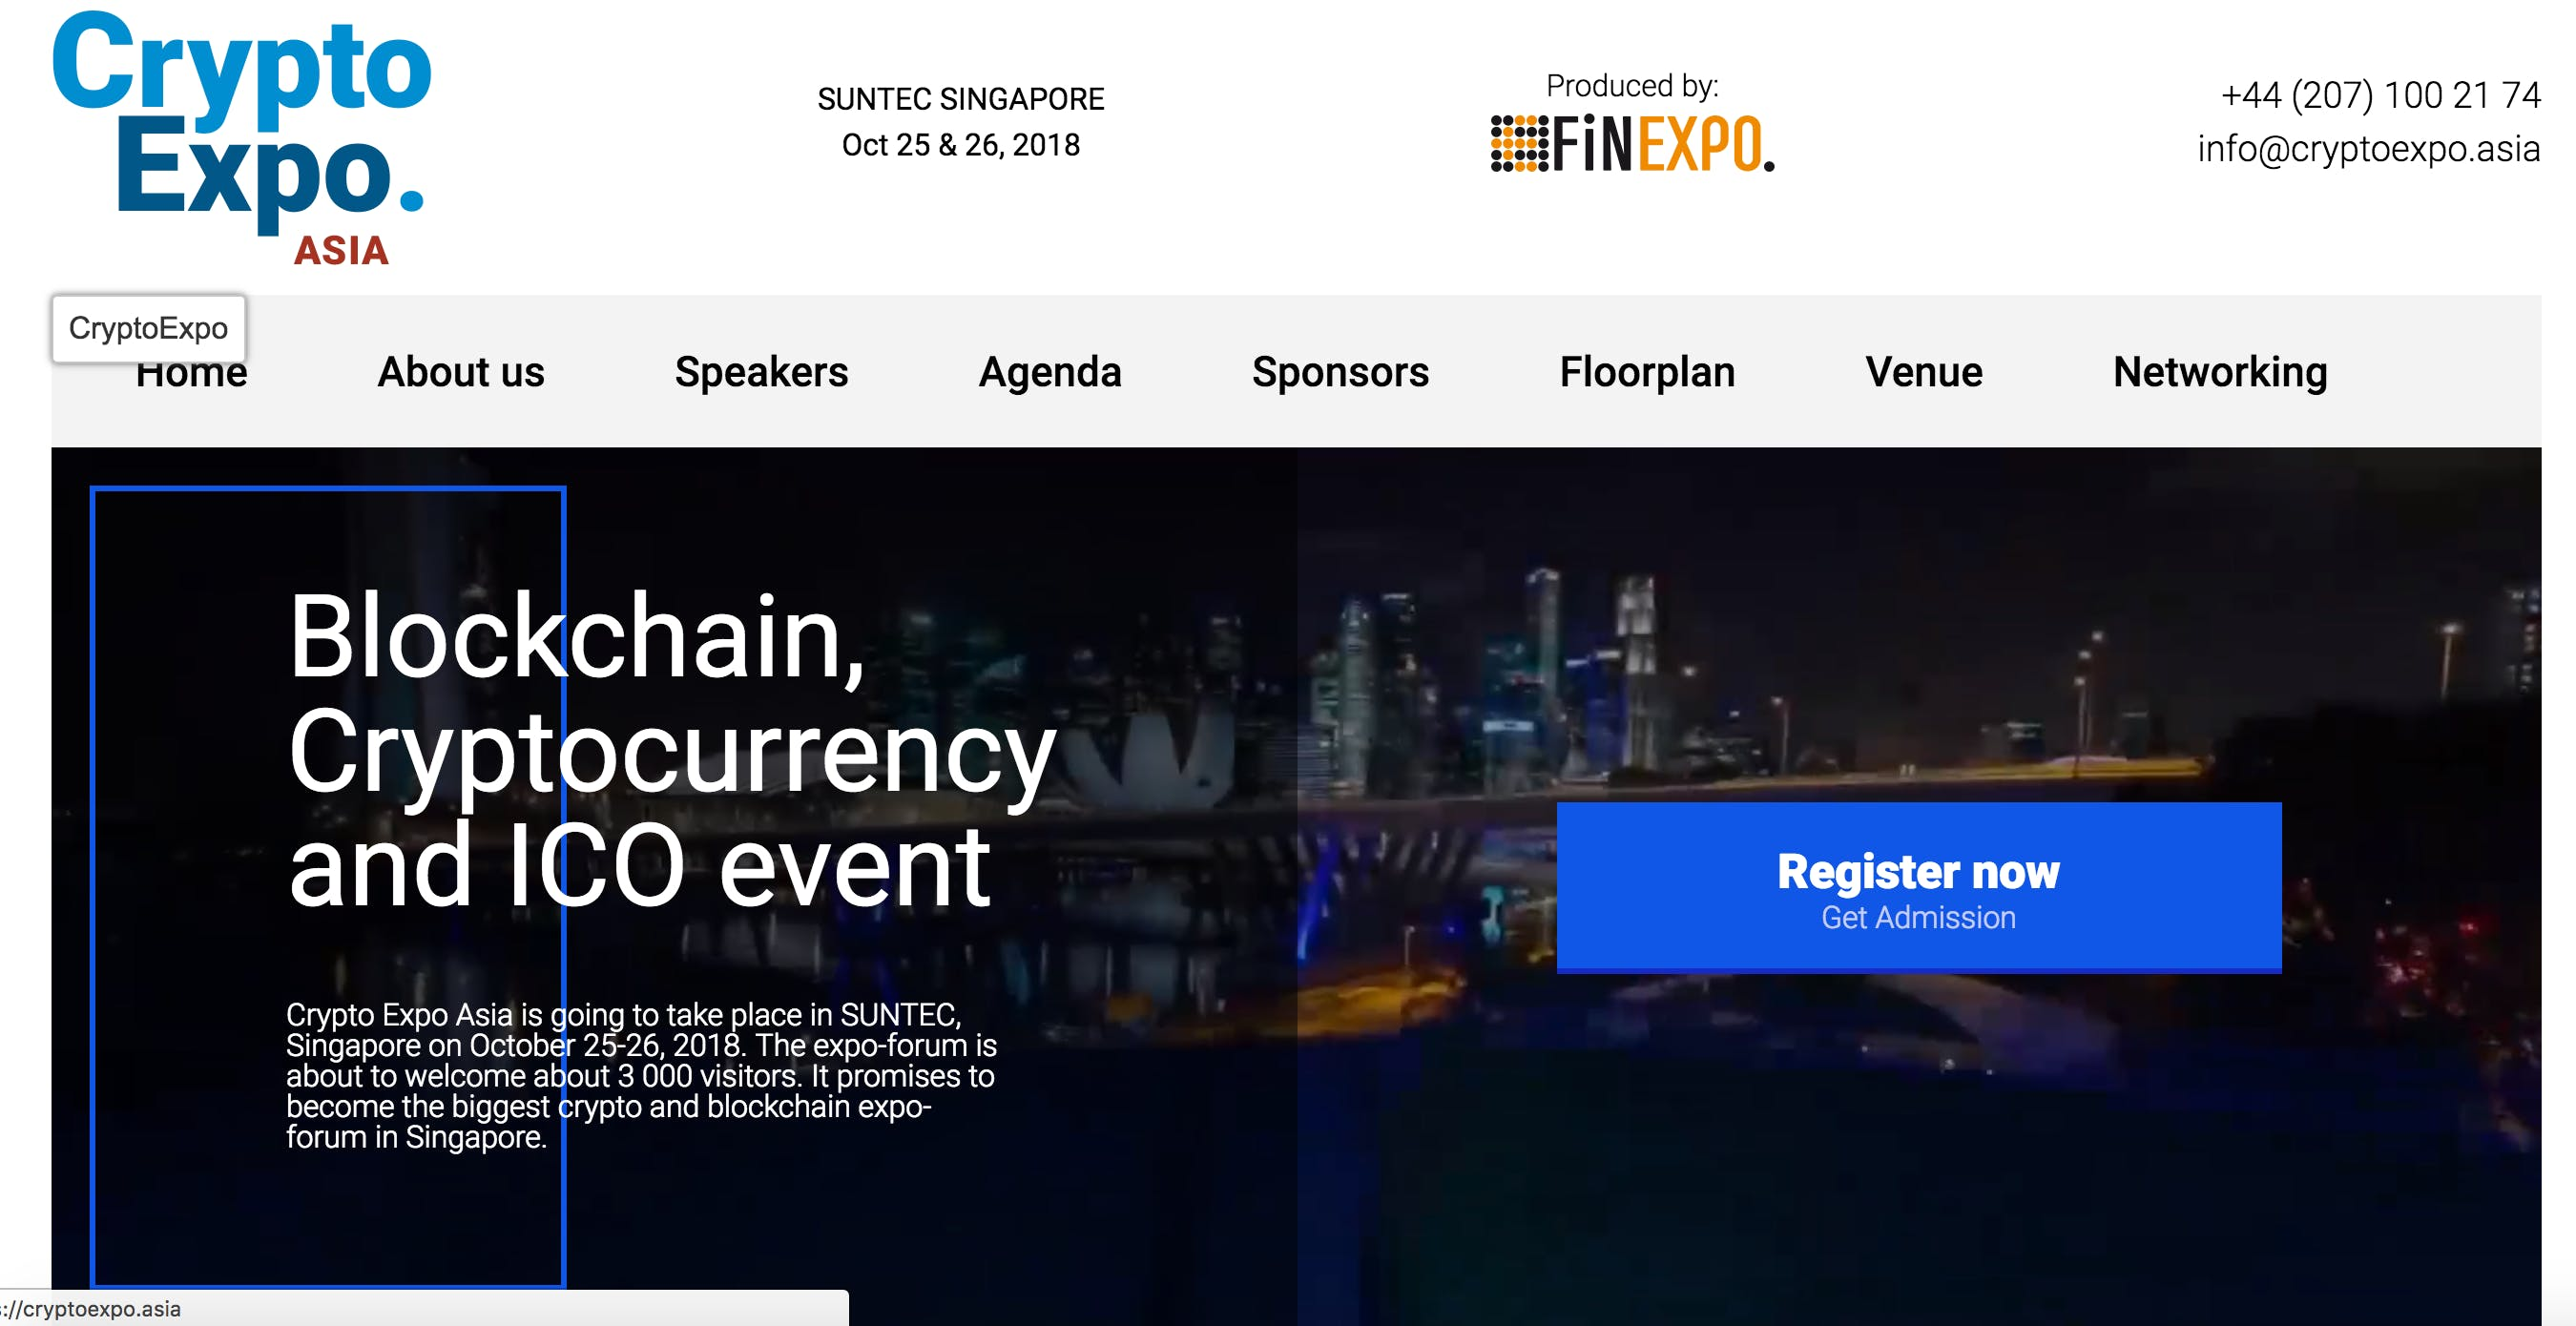 Crypto Expo Asia 2018 - Singapore (Financial